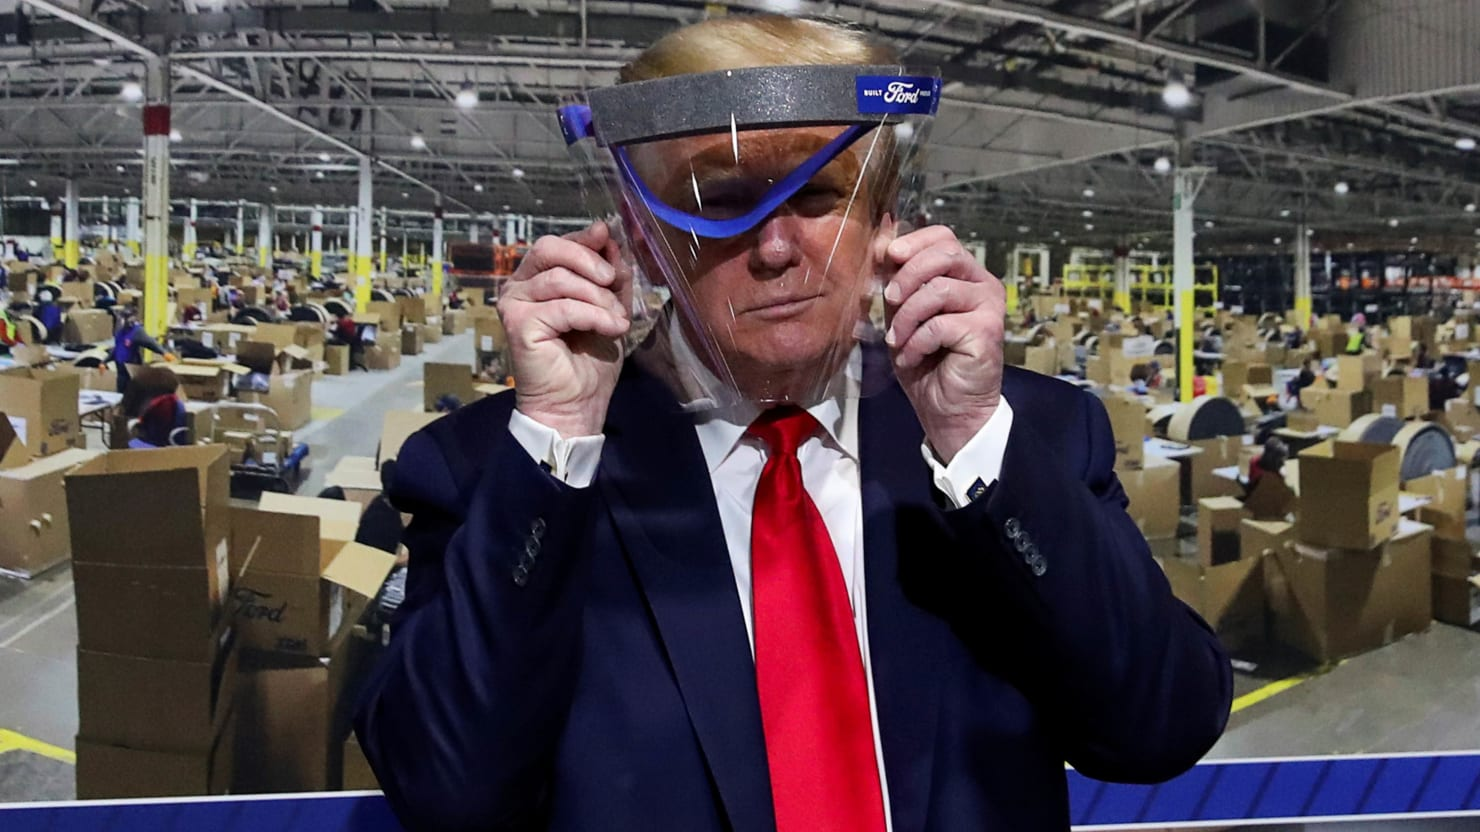 'Bill Gates Wants Us to Get It': The Deranged Scene at Trump's Ford Factory Tour